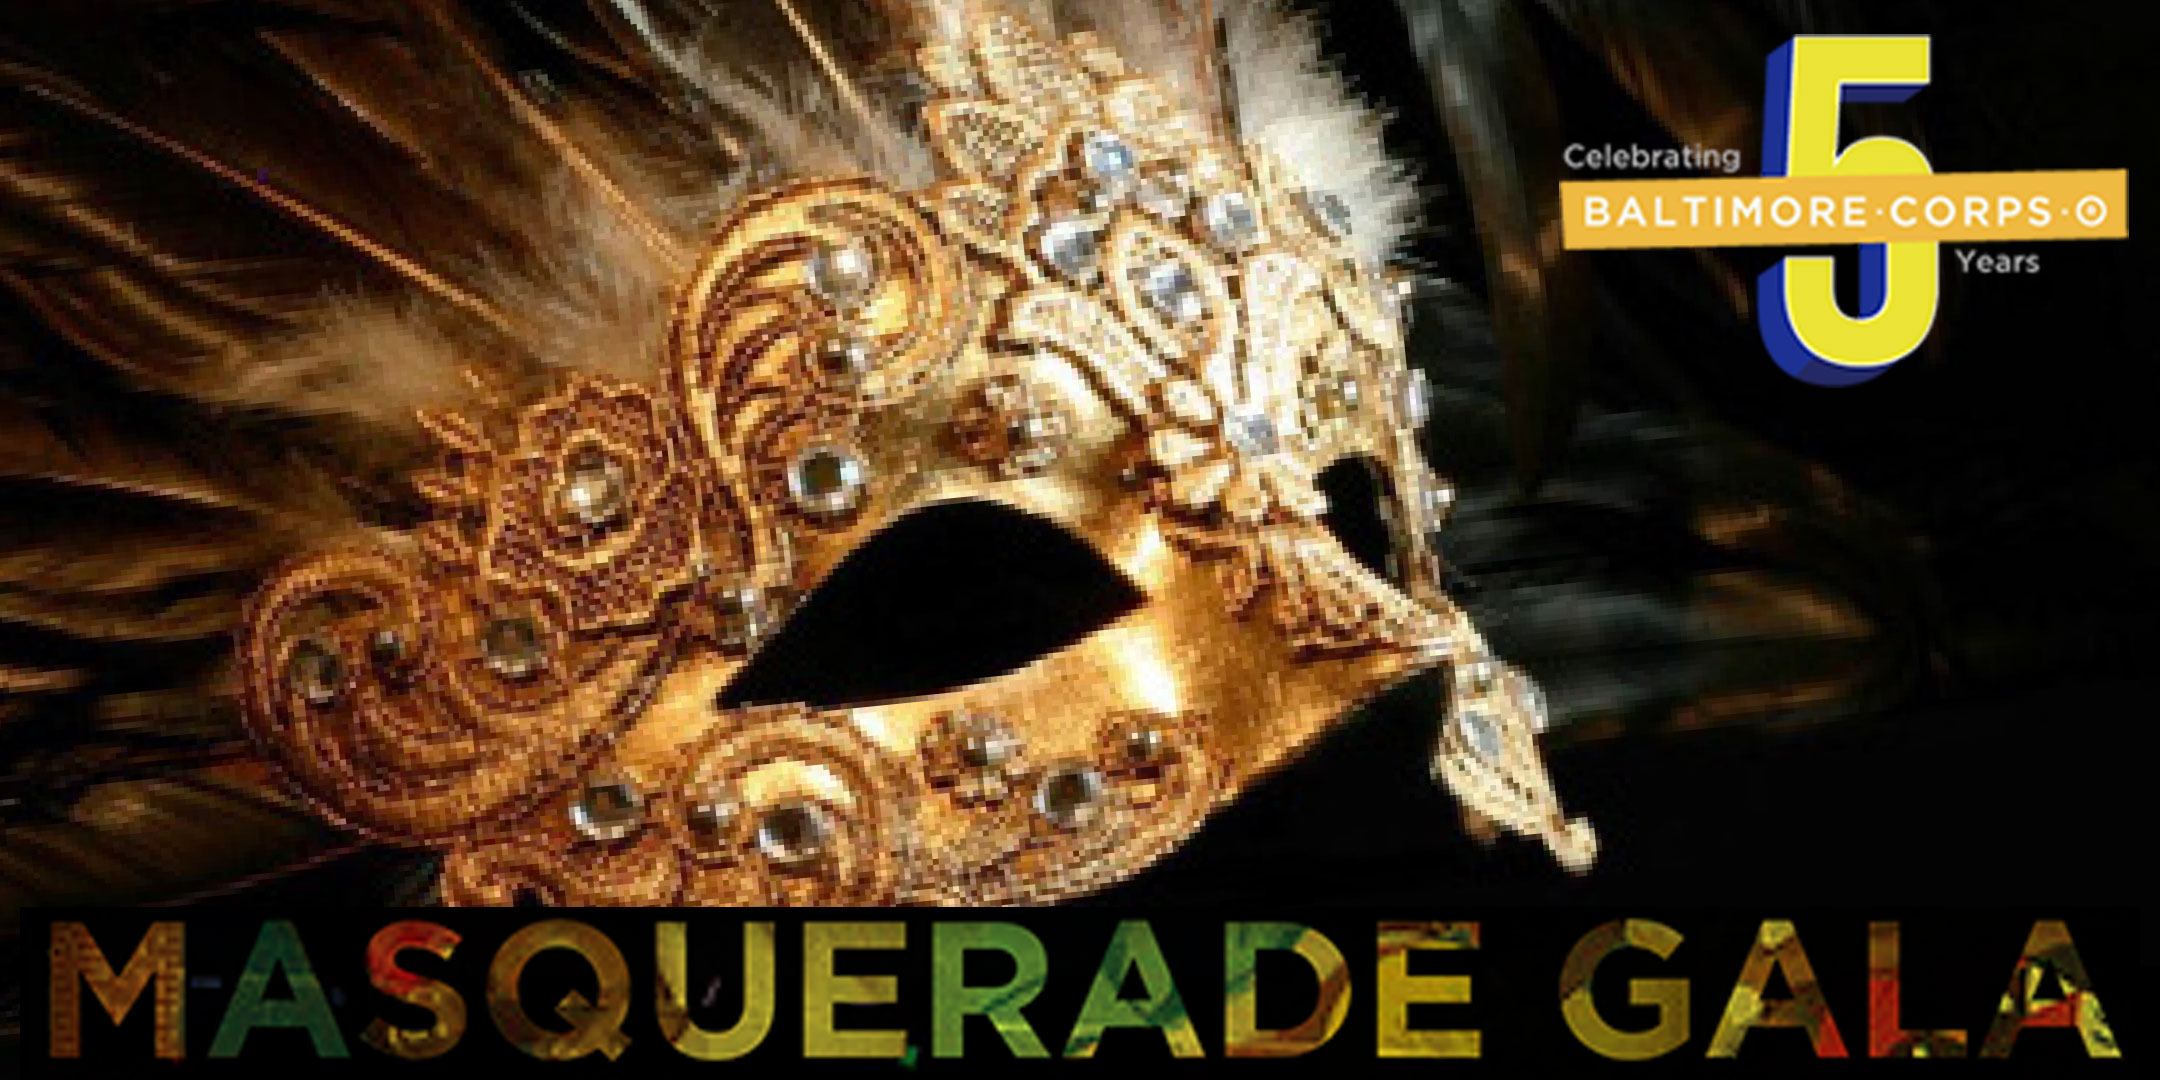 Masquerade Gala with 5-year logo and mask